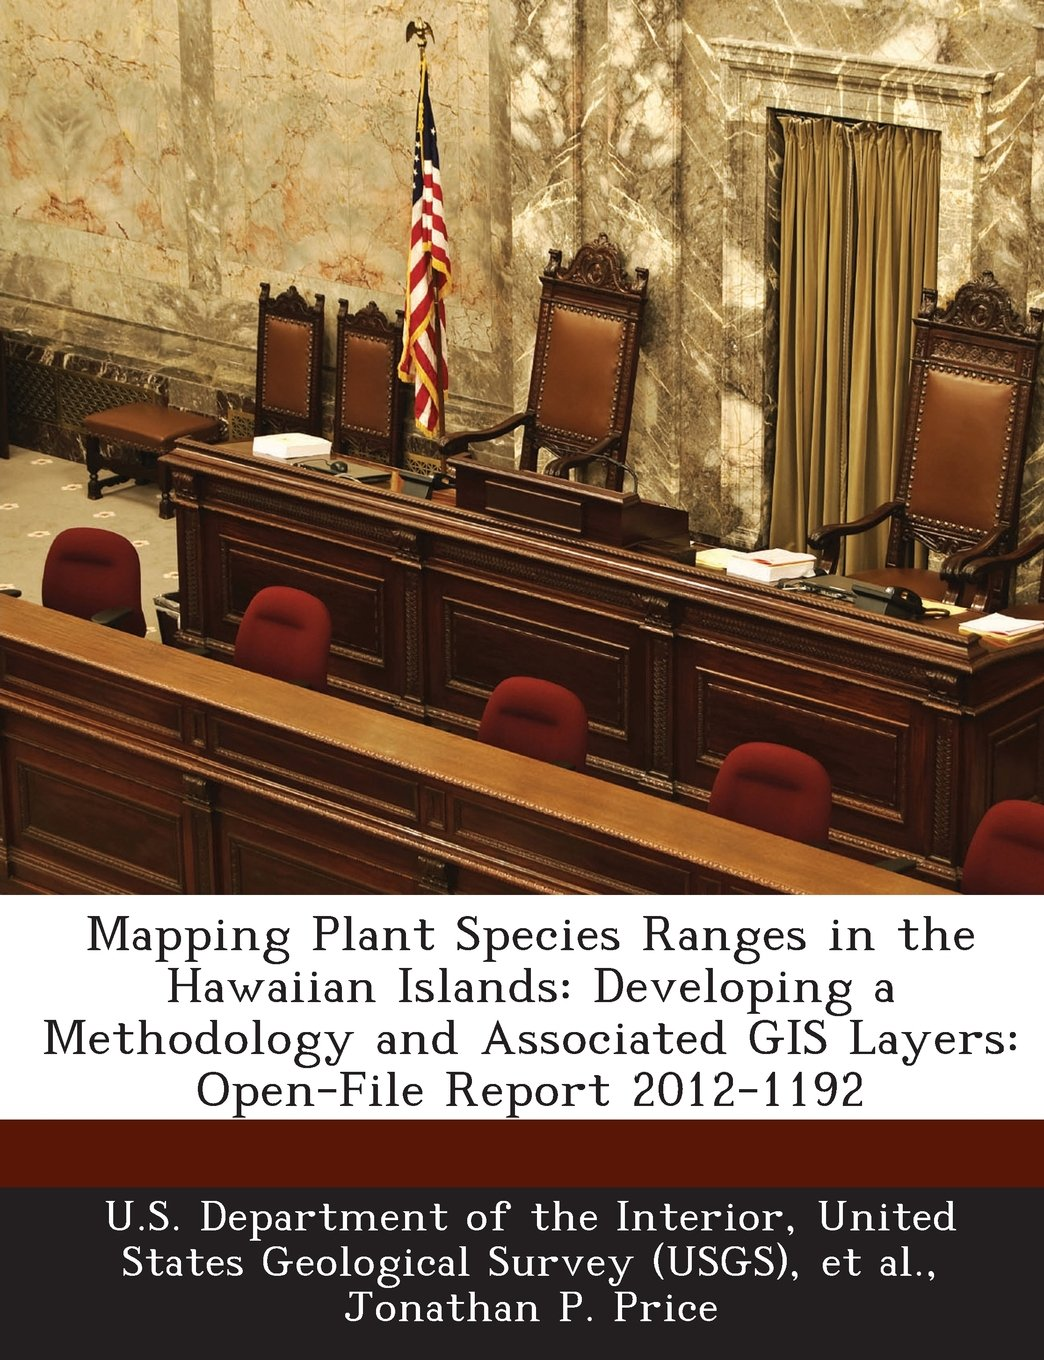 Download Mapping Plant Species Ranges in the Hawaiian Islands: Developing a Methodology and Associated GIS Layers: Open-File Report 2012-1192 PDF